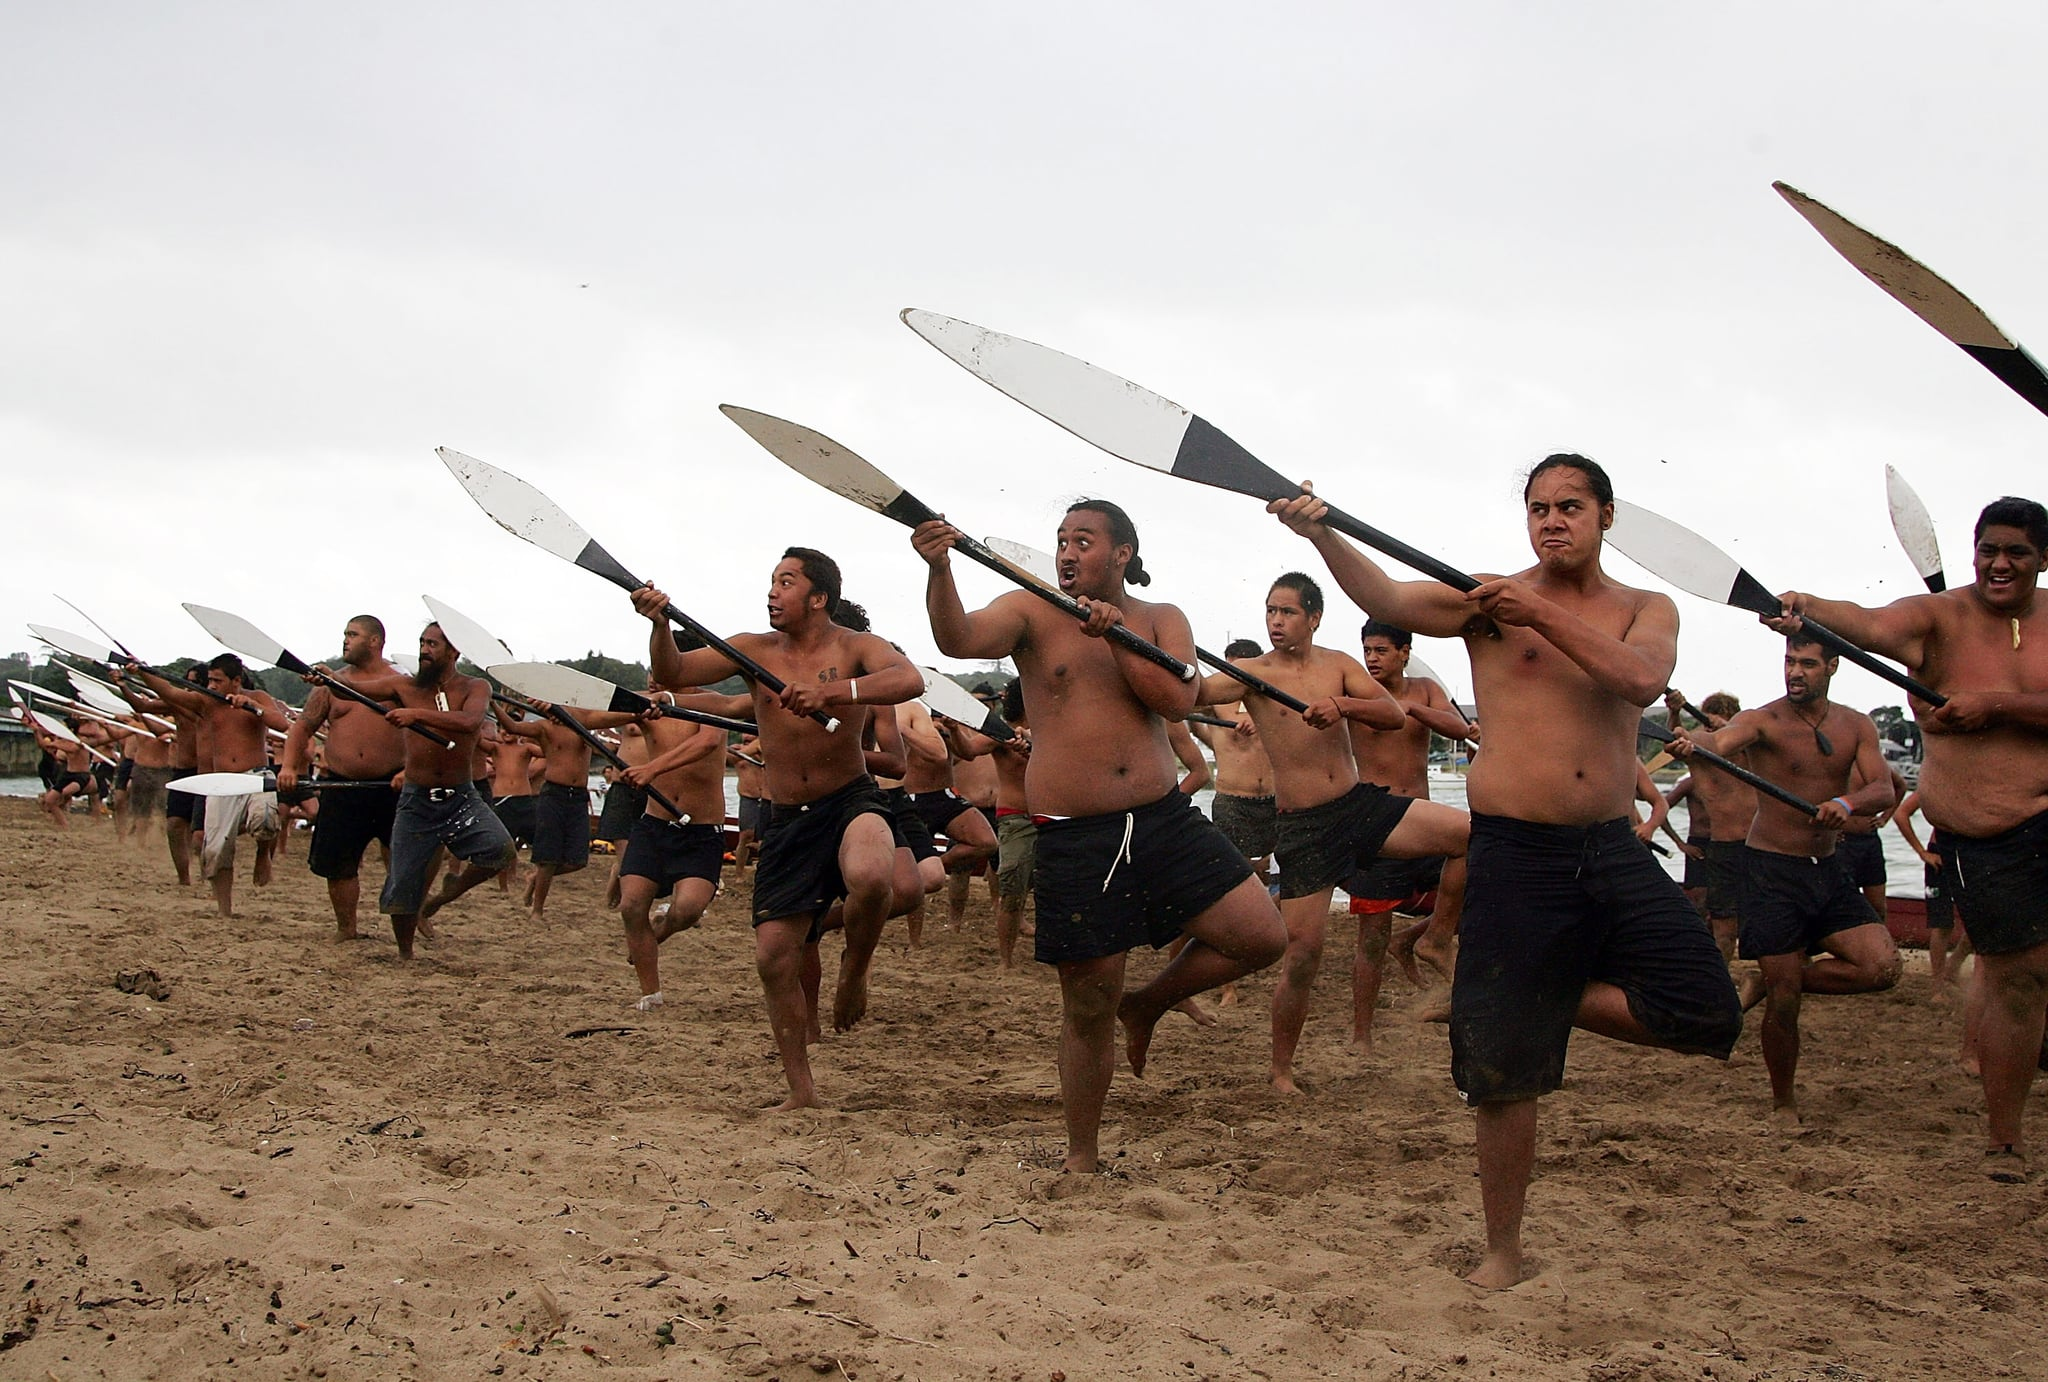 Maori warriors practice a haka at Te Ti Bay the day before Waitangi Day (NZ's national holiday).